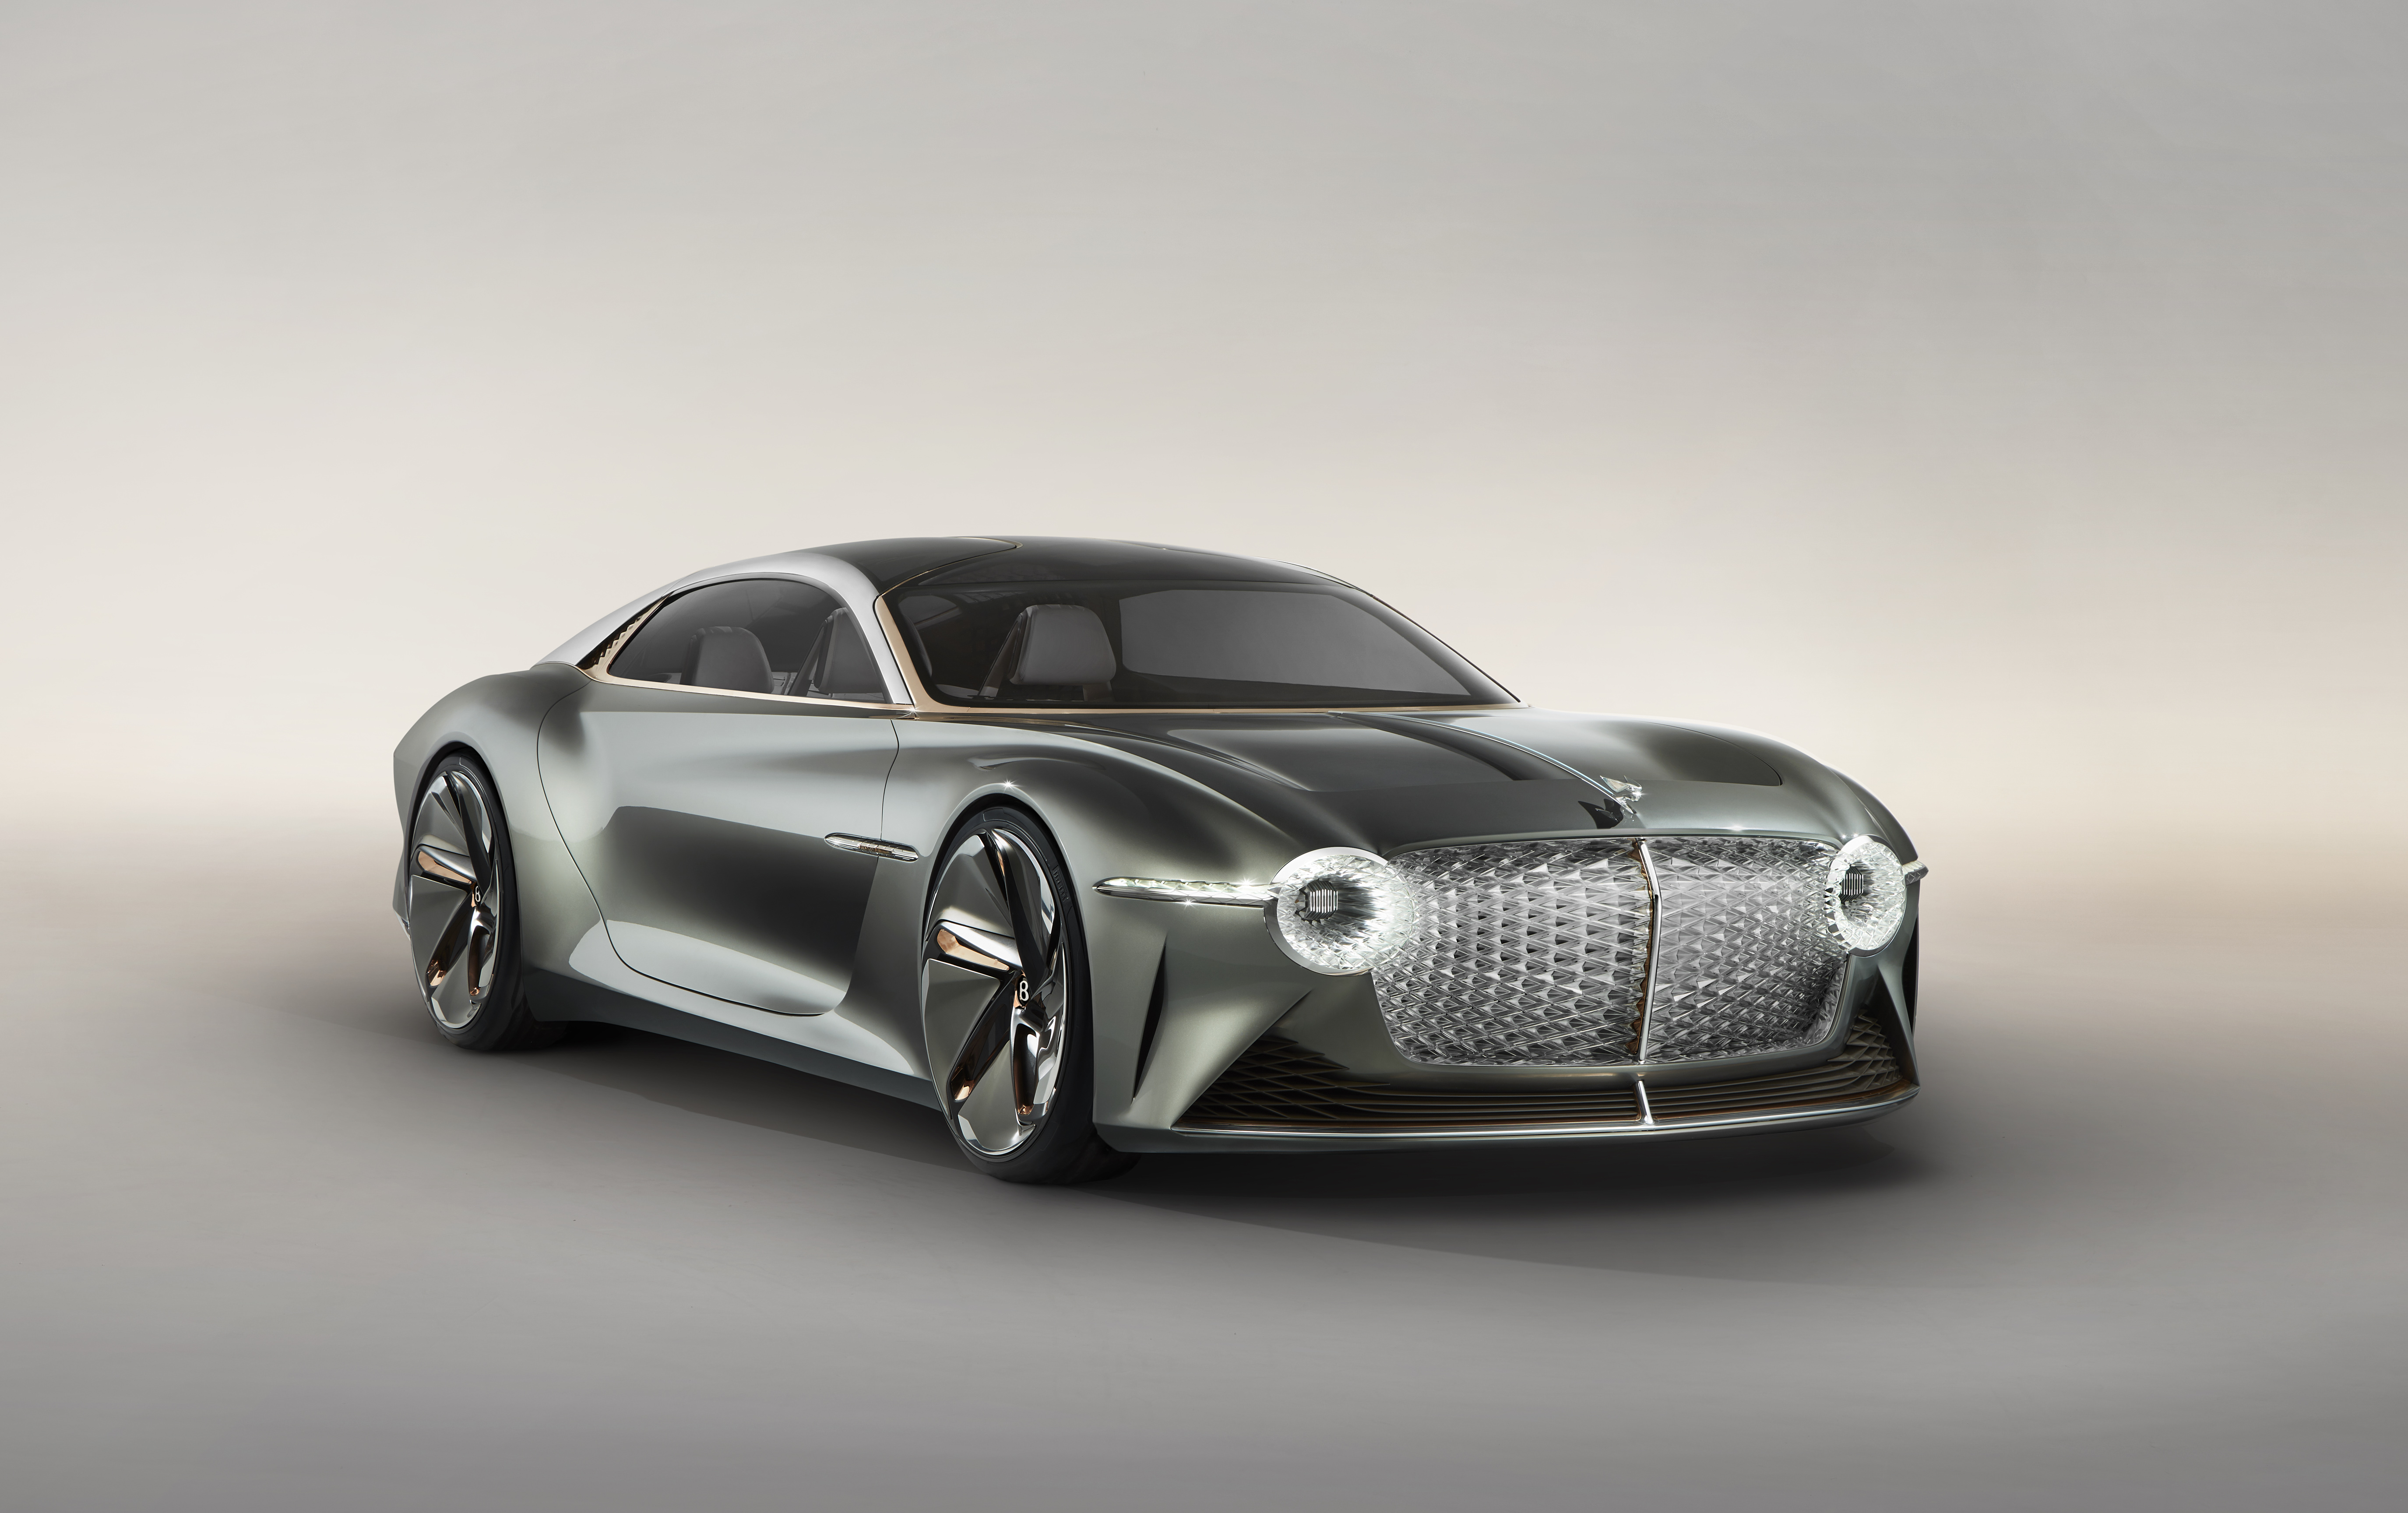 Bentley unveils the future of grand touring – the zero emission EXP100 GT